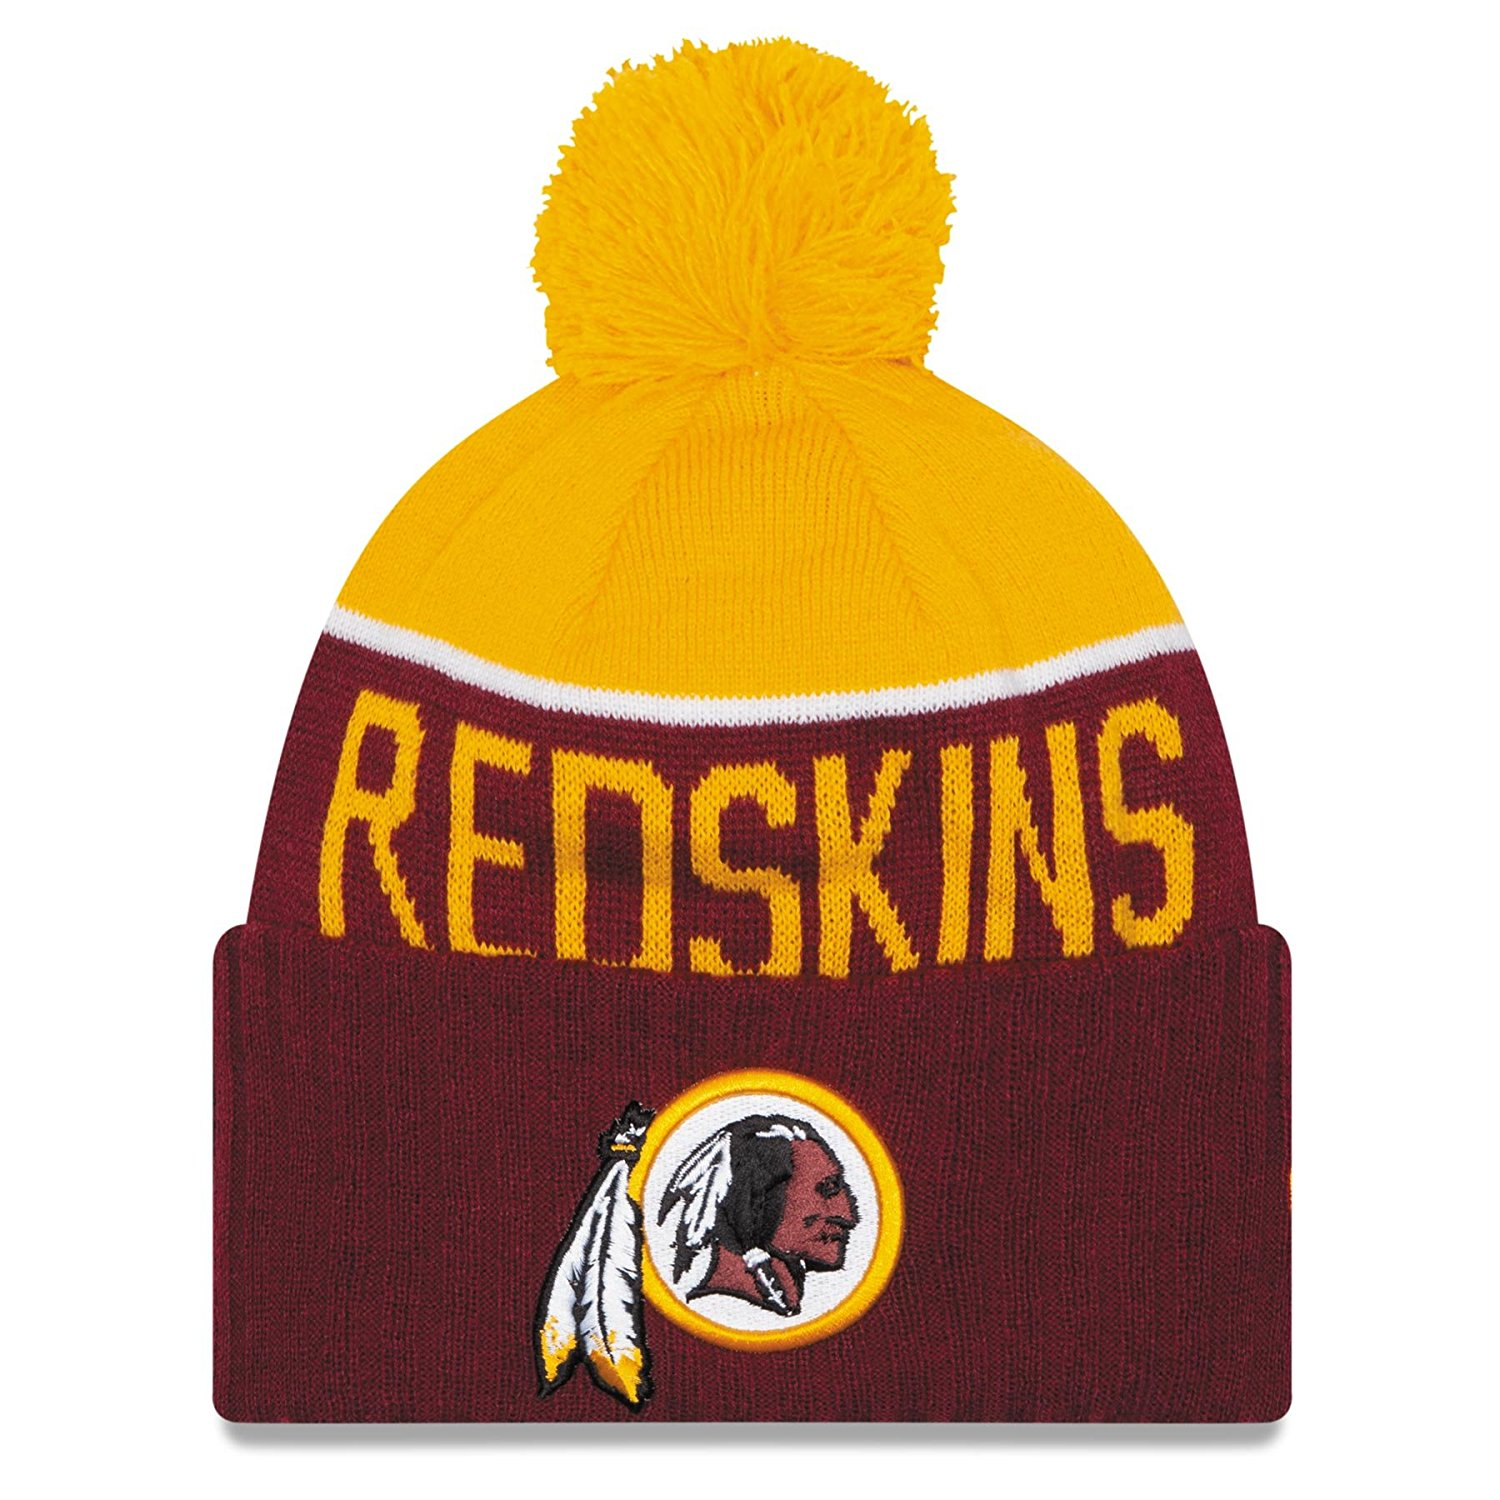 edcf7ab46 Buy New Era NFL Washington Redskins Woven Biggie Cuffed Ski Hat ...